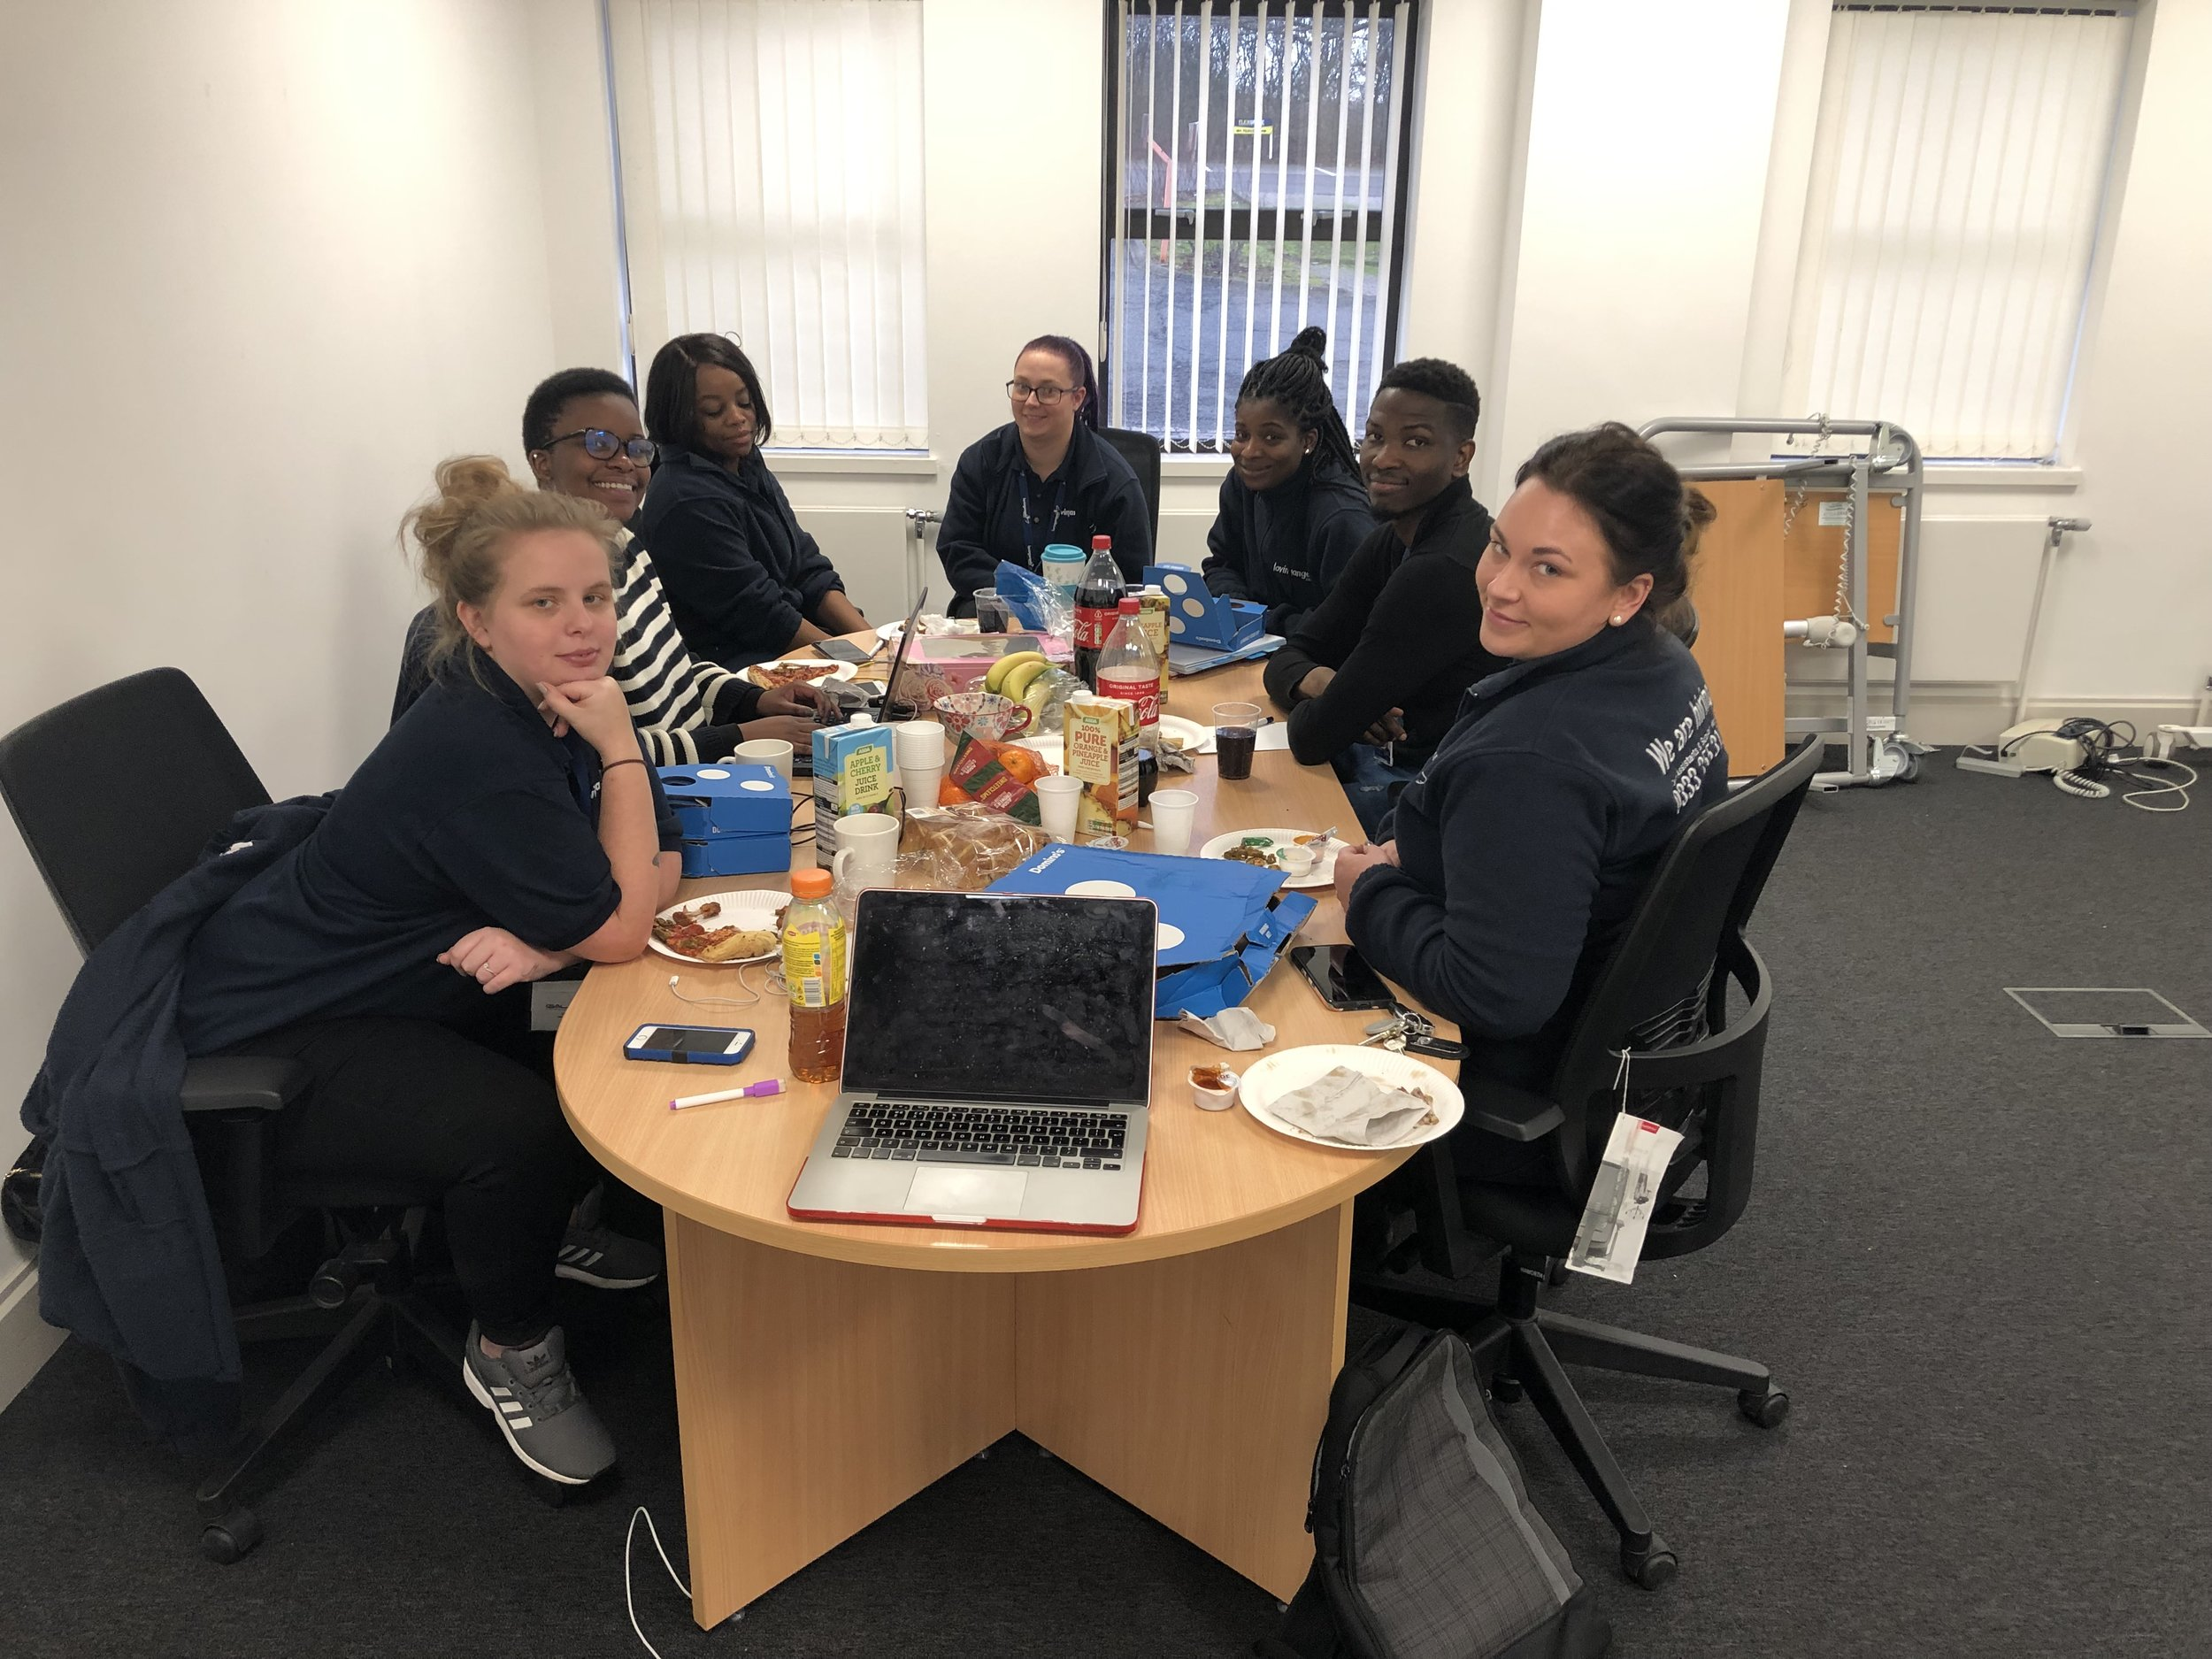 2019 planning meeting with our care management team.